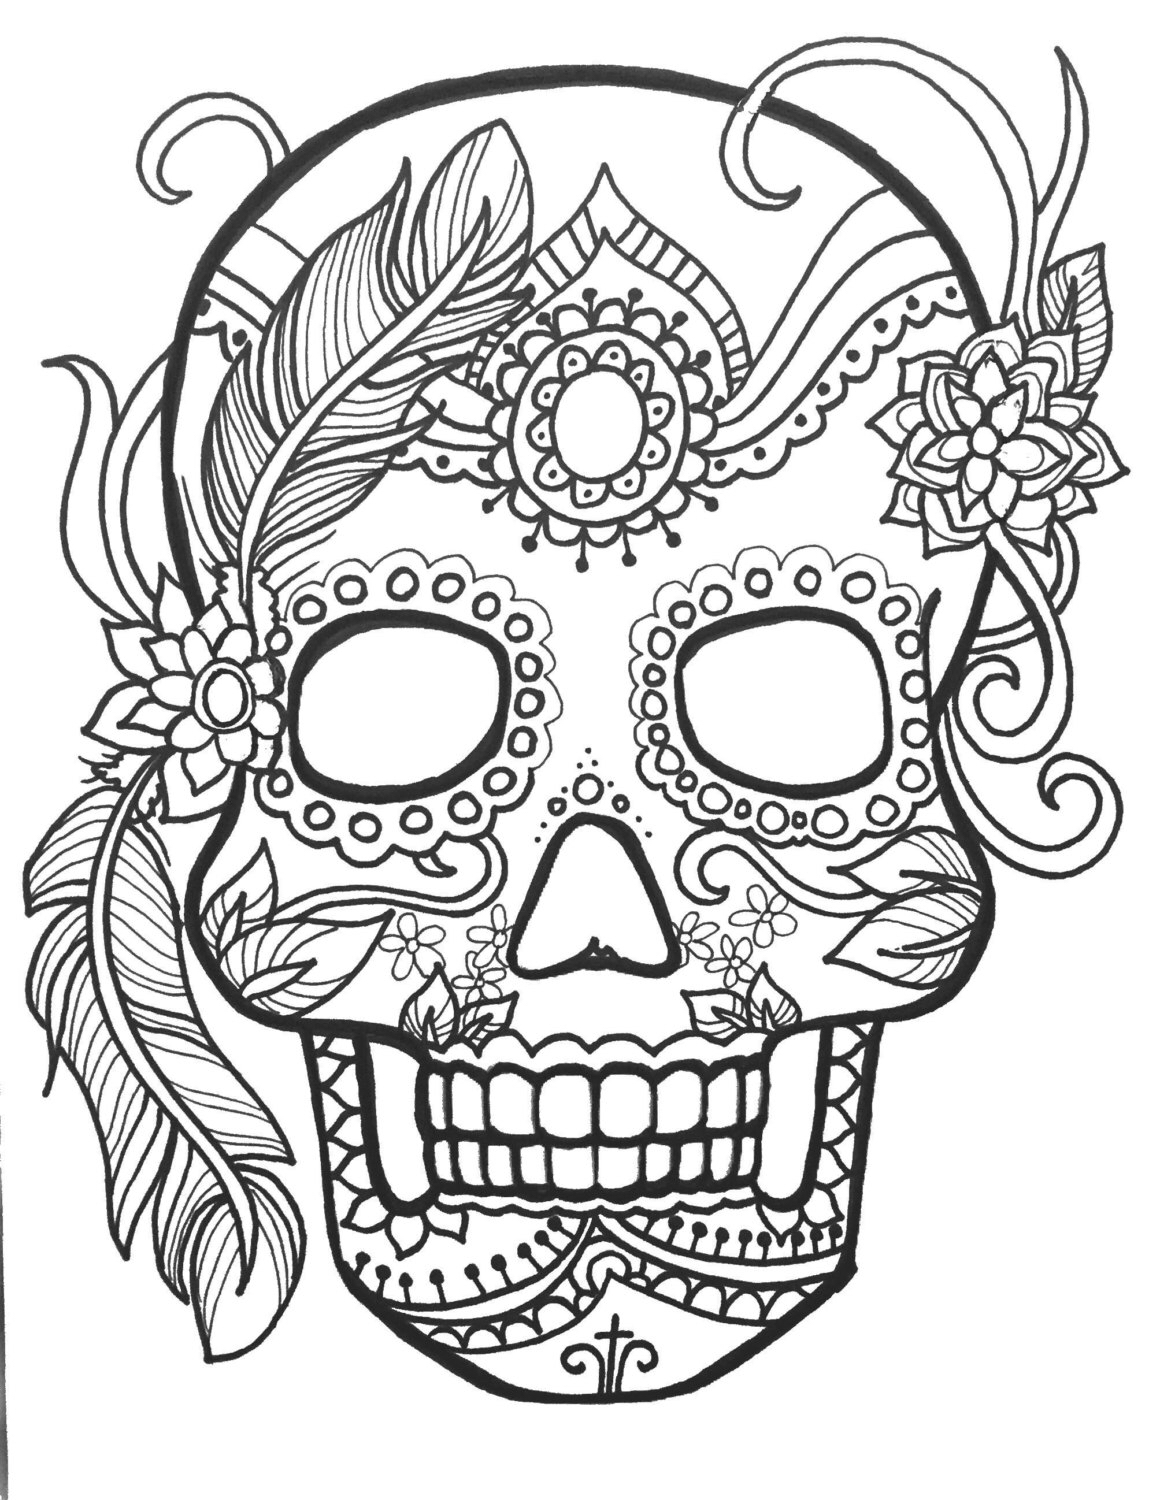 Skull Mandala Coloring Pages At Getcolorings